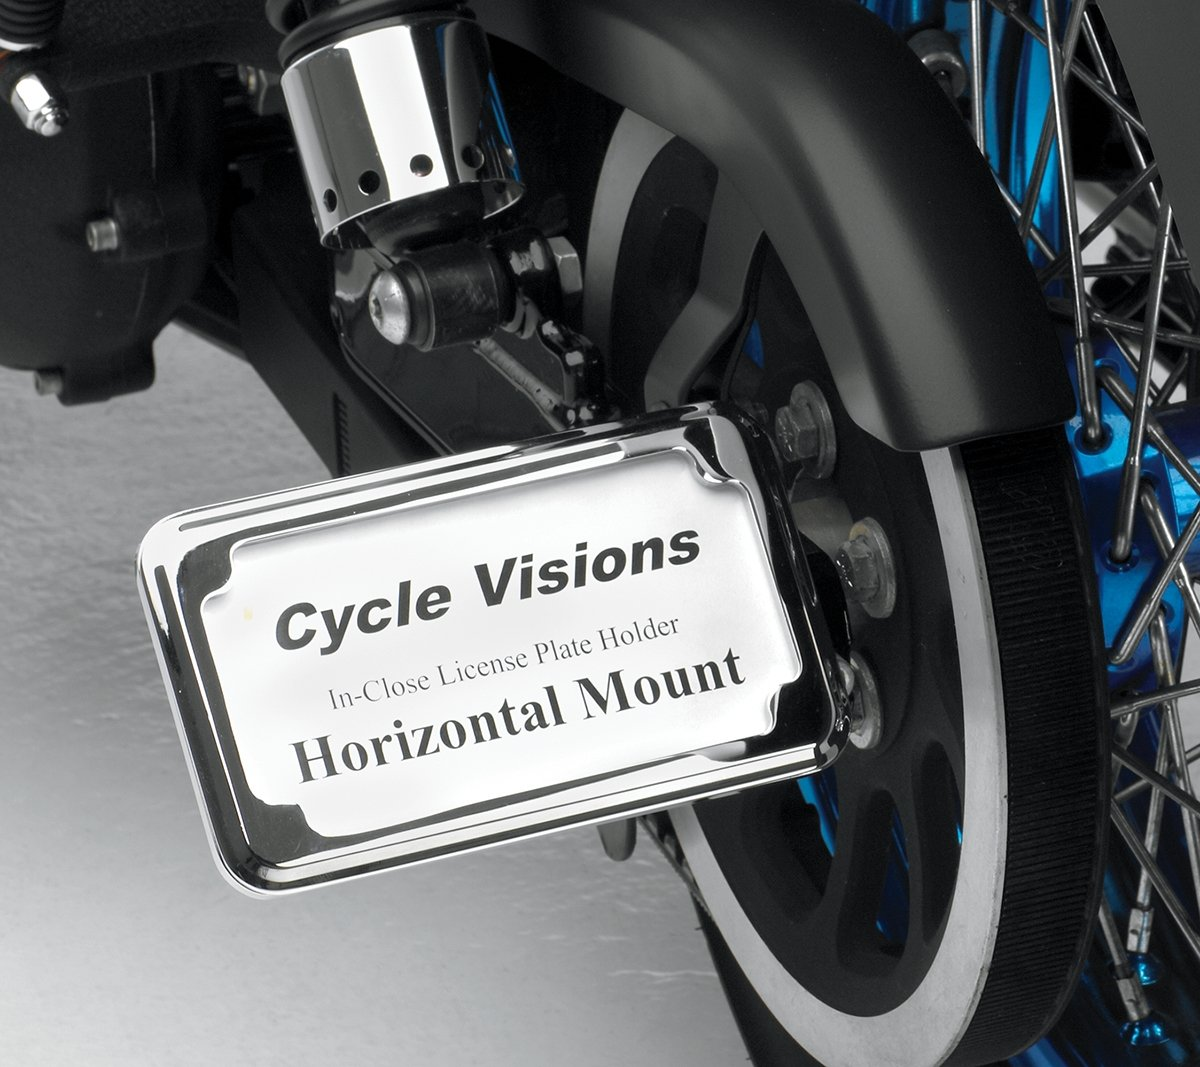 Cycle Visions In-Close Horizontal Slick Signal License Plate Frame and Holder - Chrome CV4604SH